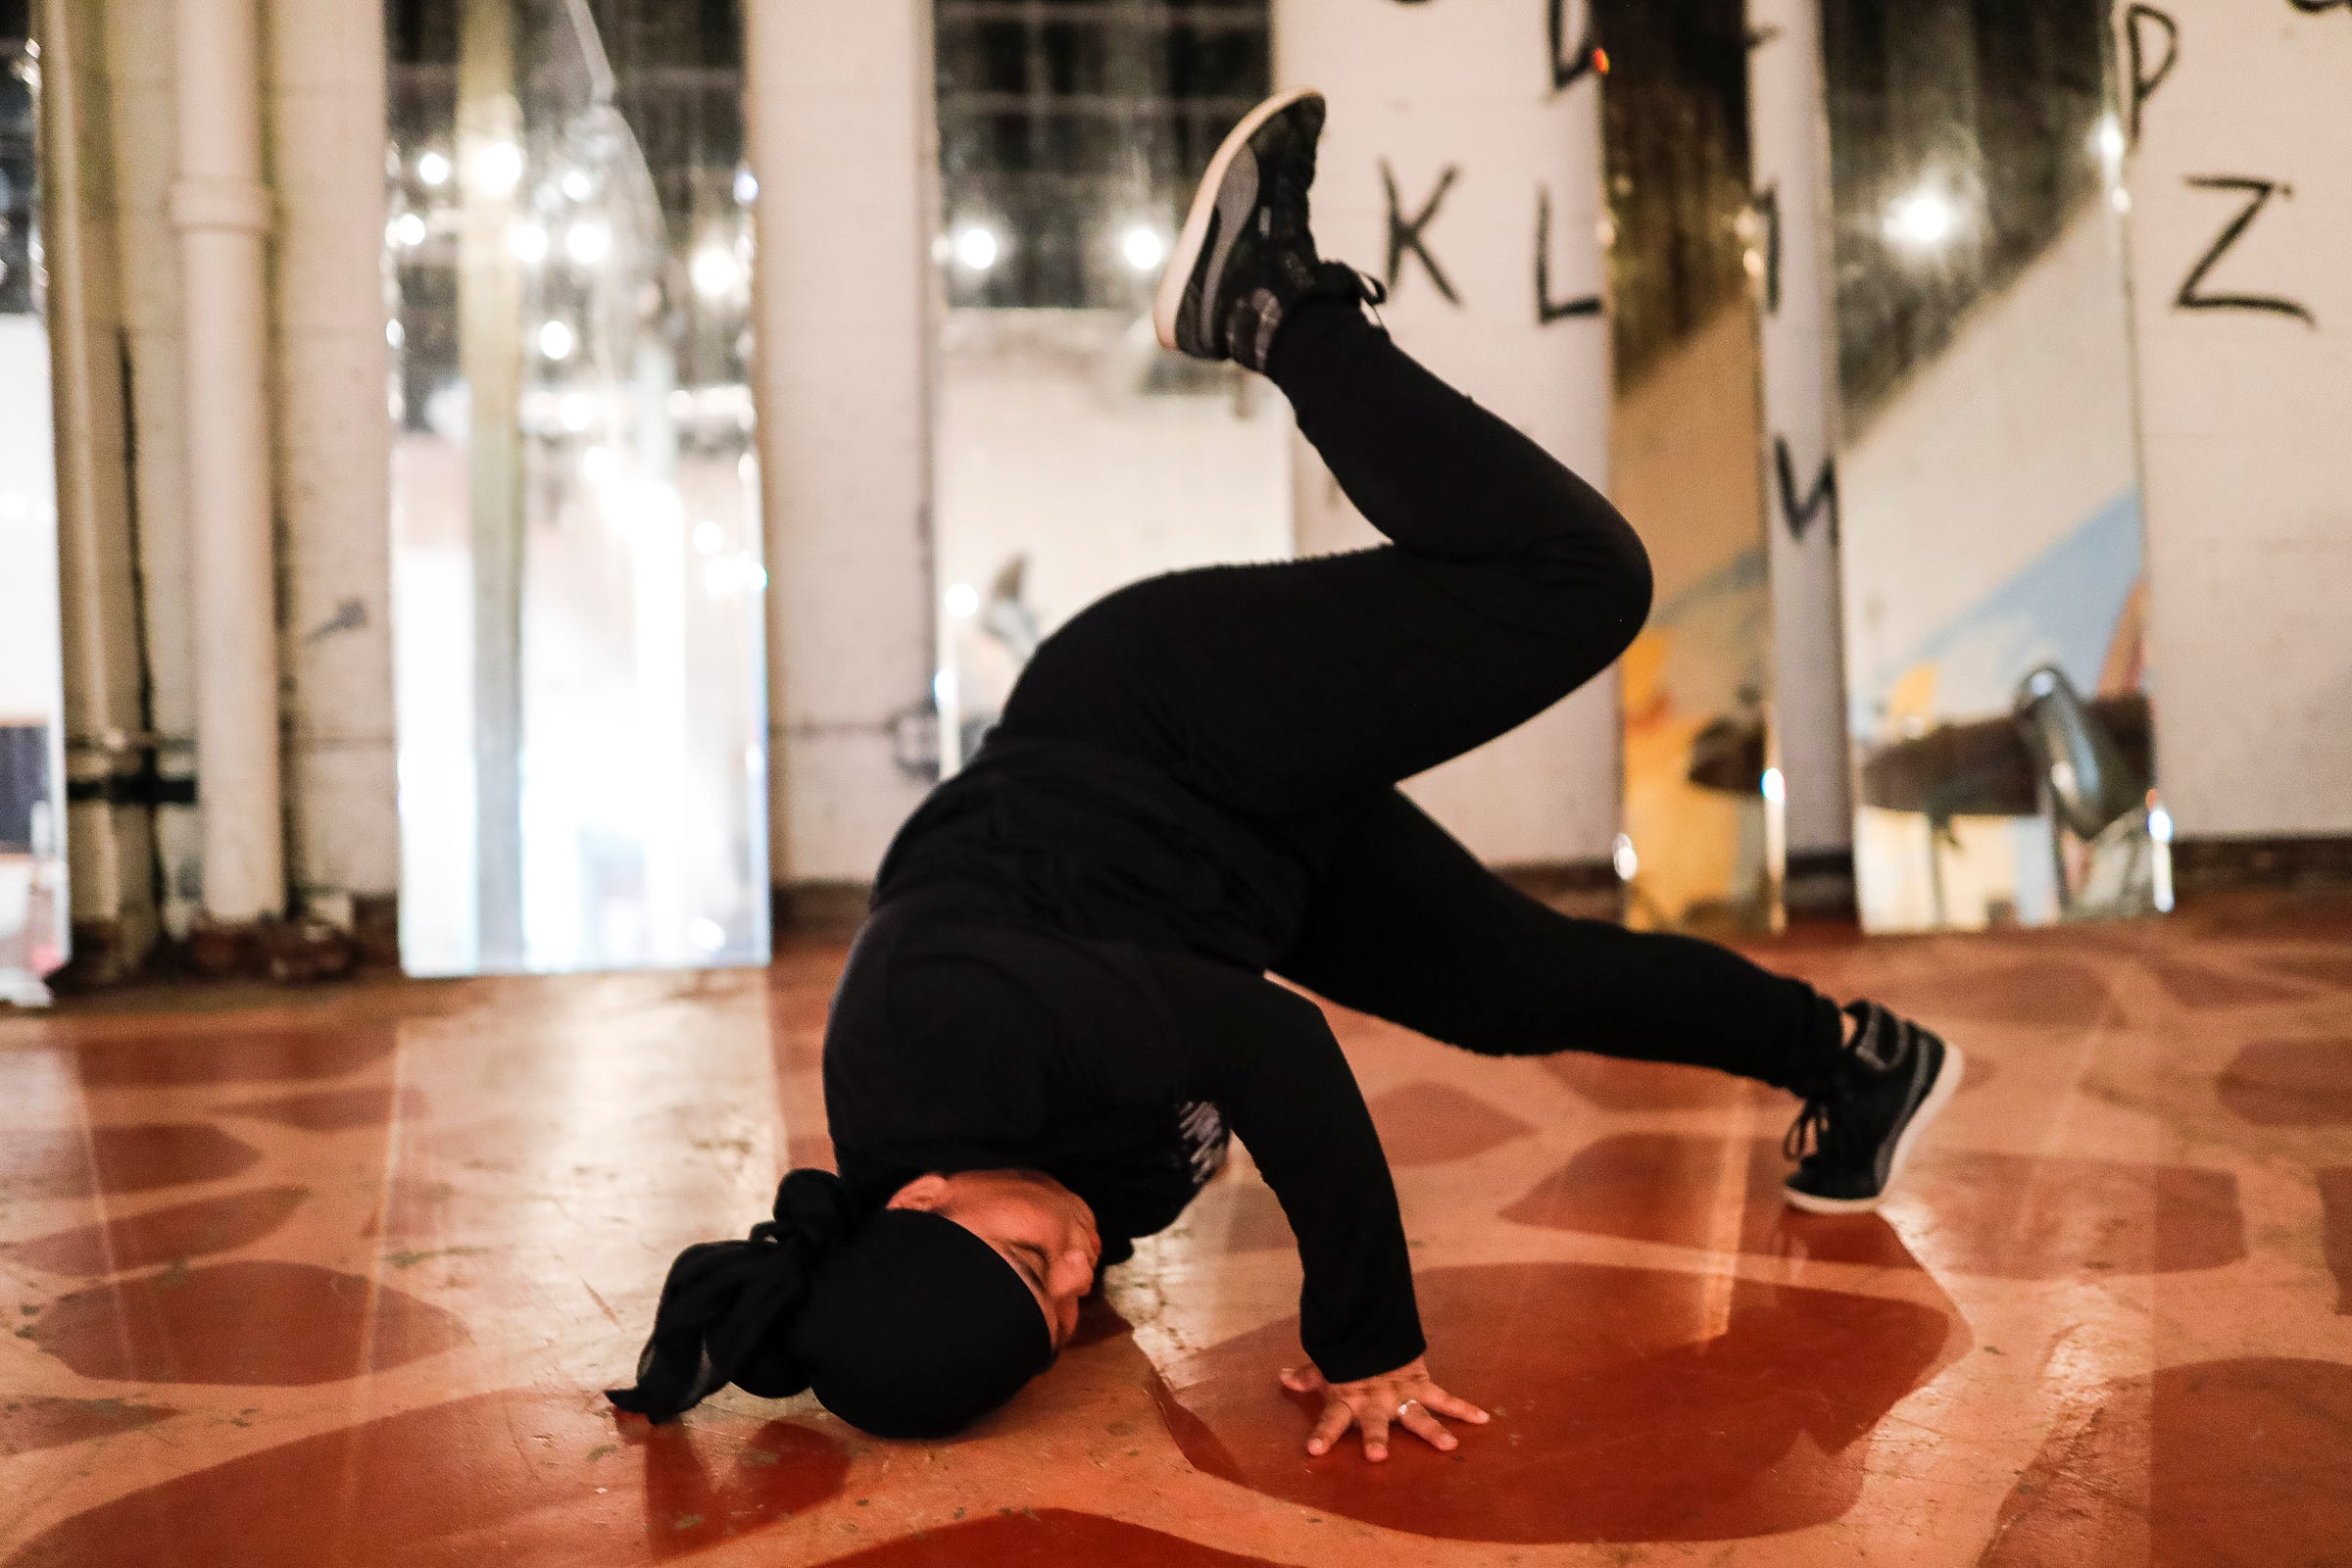 Mary Mar, also knowns as the BGIRL MAMA, practices break dance at Cass Corridor Neighborhood Development Corporation in Detroit on August 4, 2021.